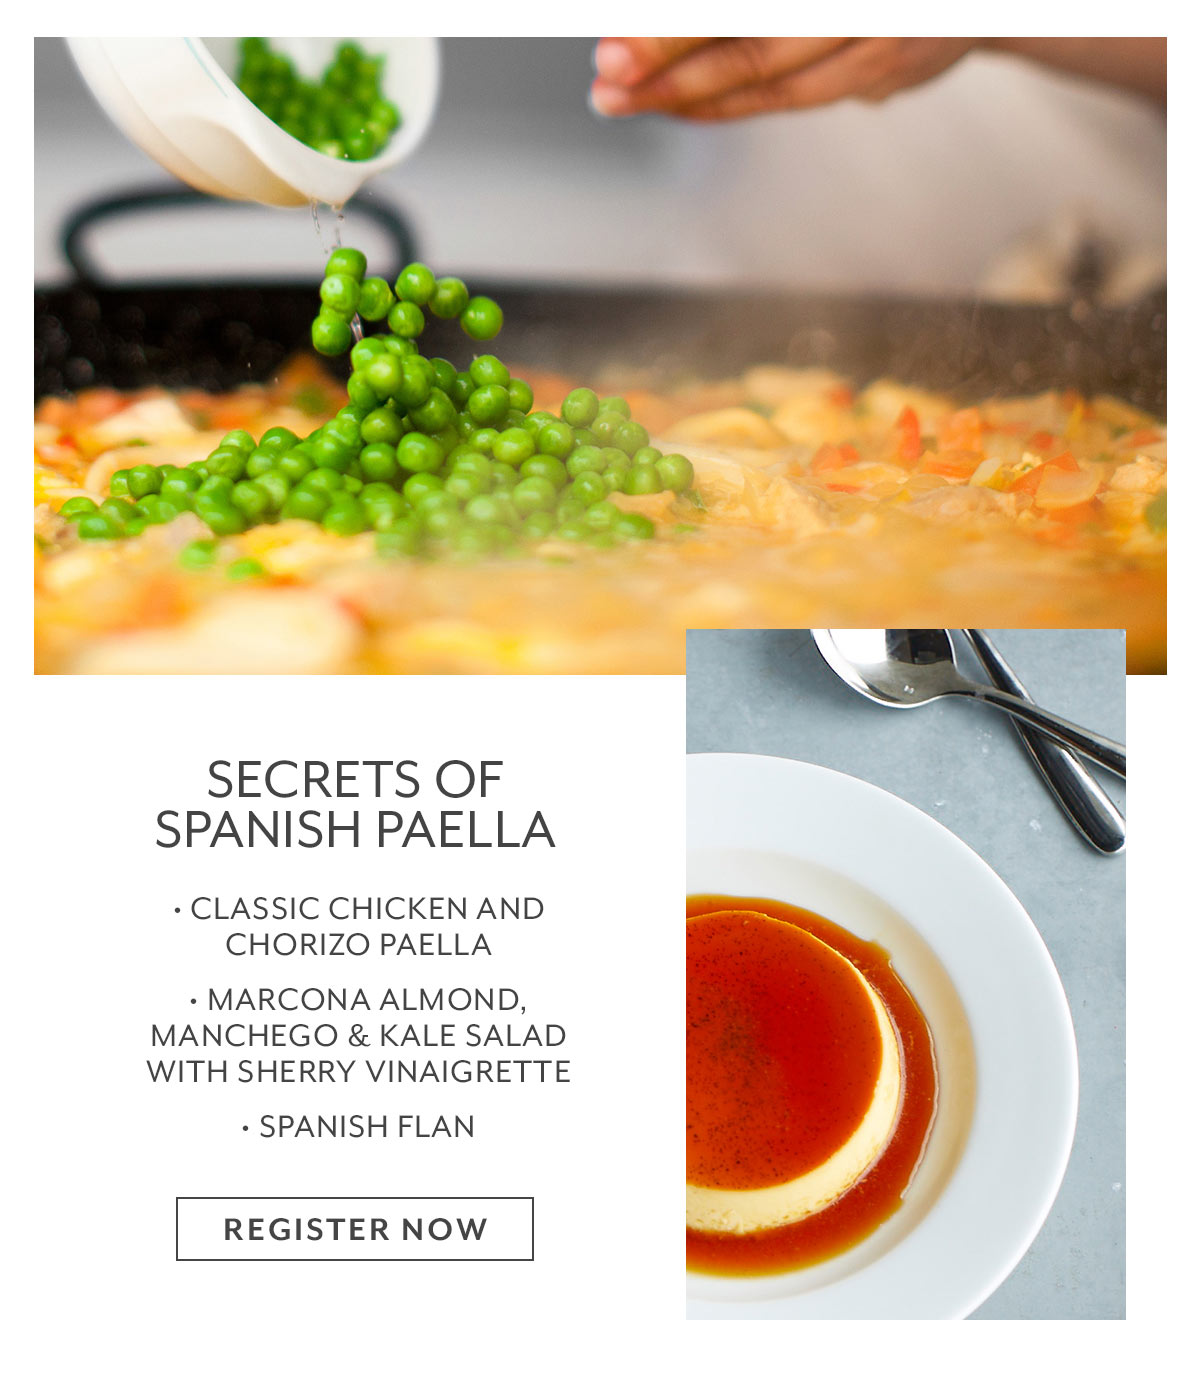 Secrets of Spanish Paella